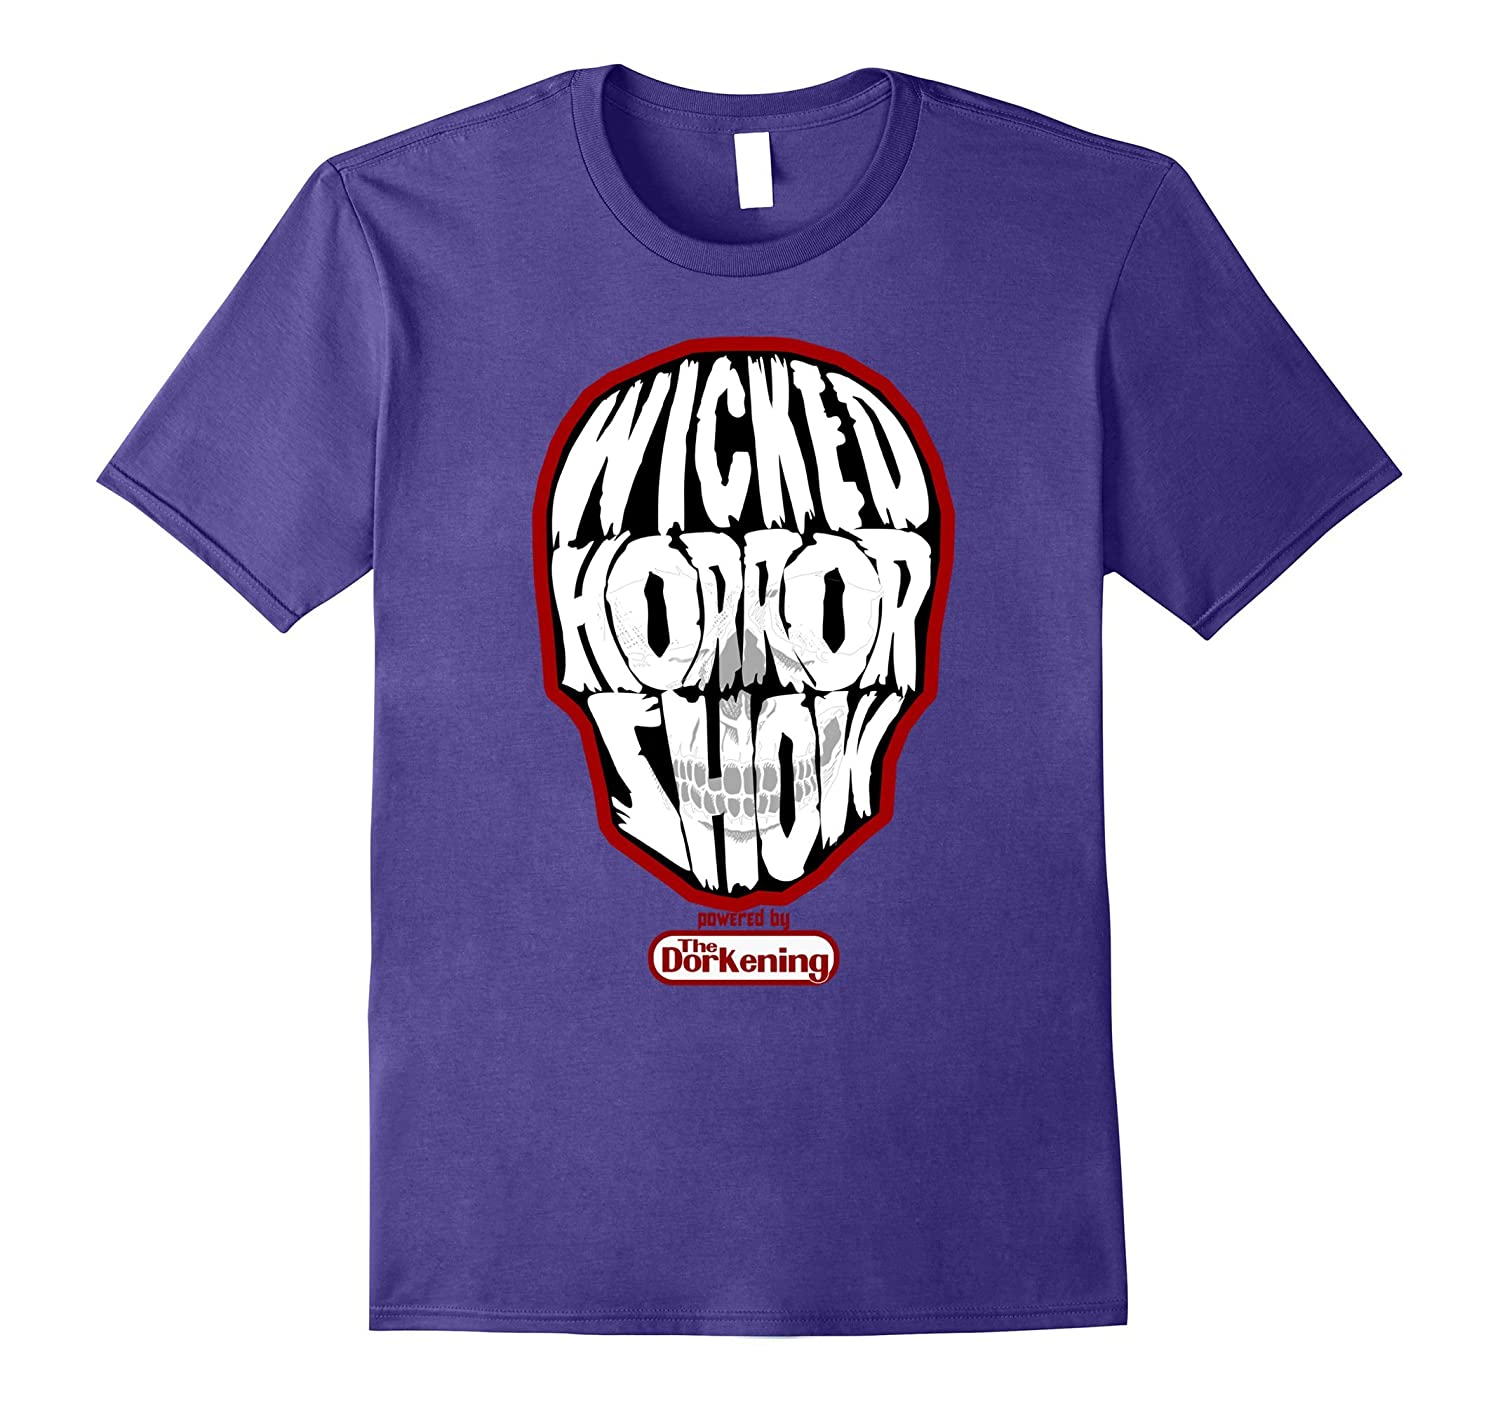 Wicked Horror Show Tee-Shirt-Vaci